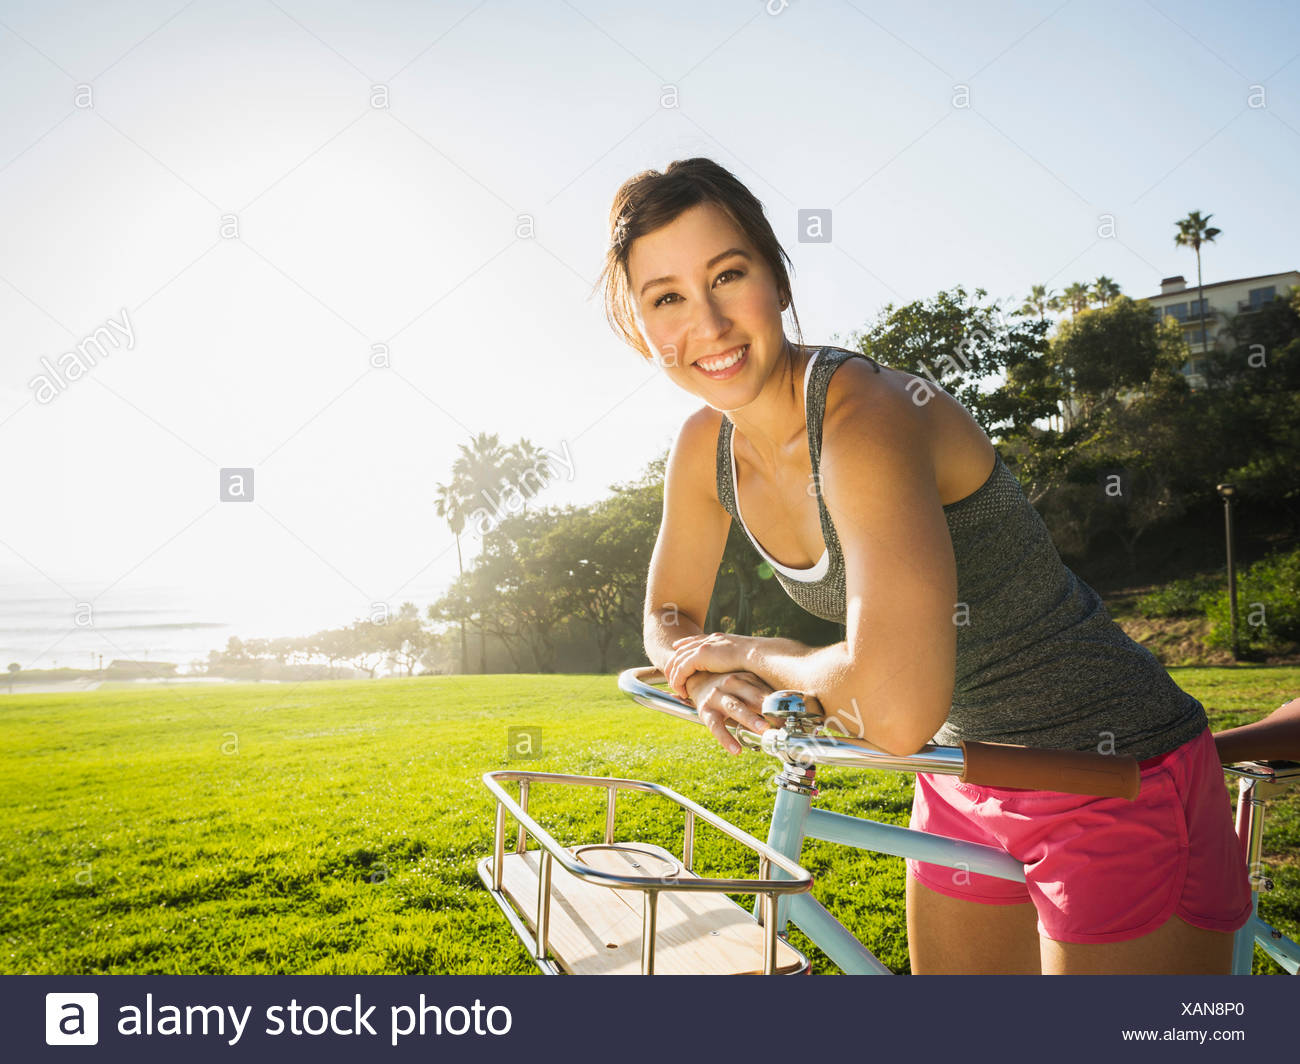 Young woman with bicycle in park - Stock Image